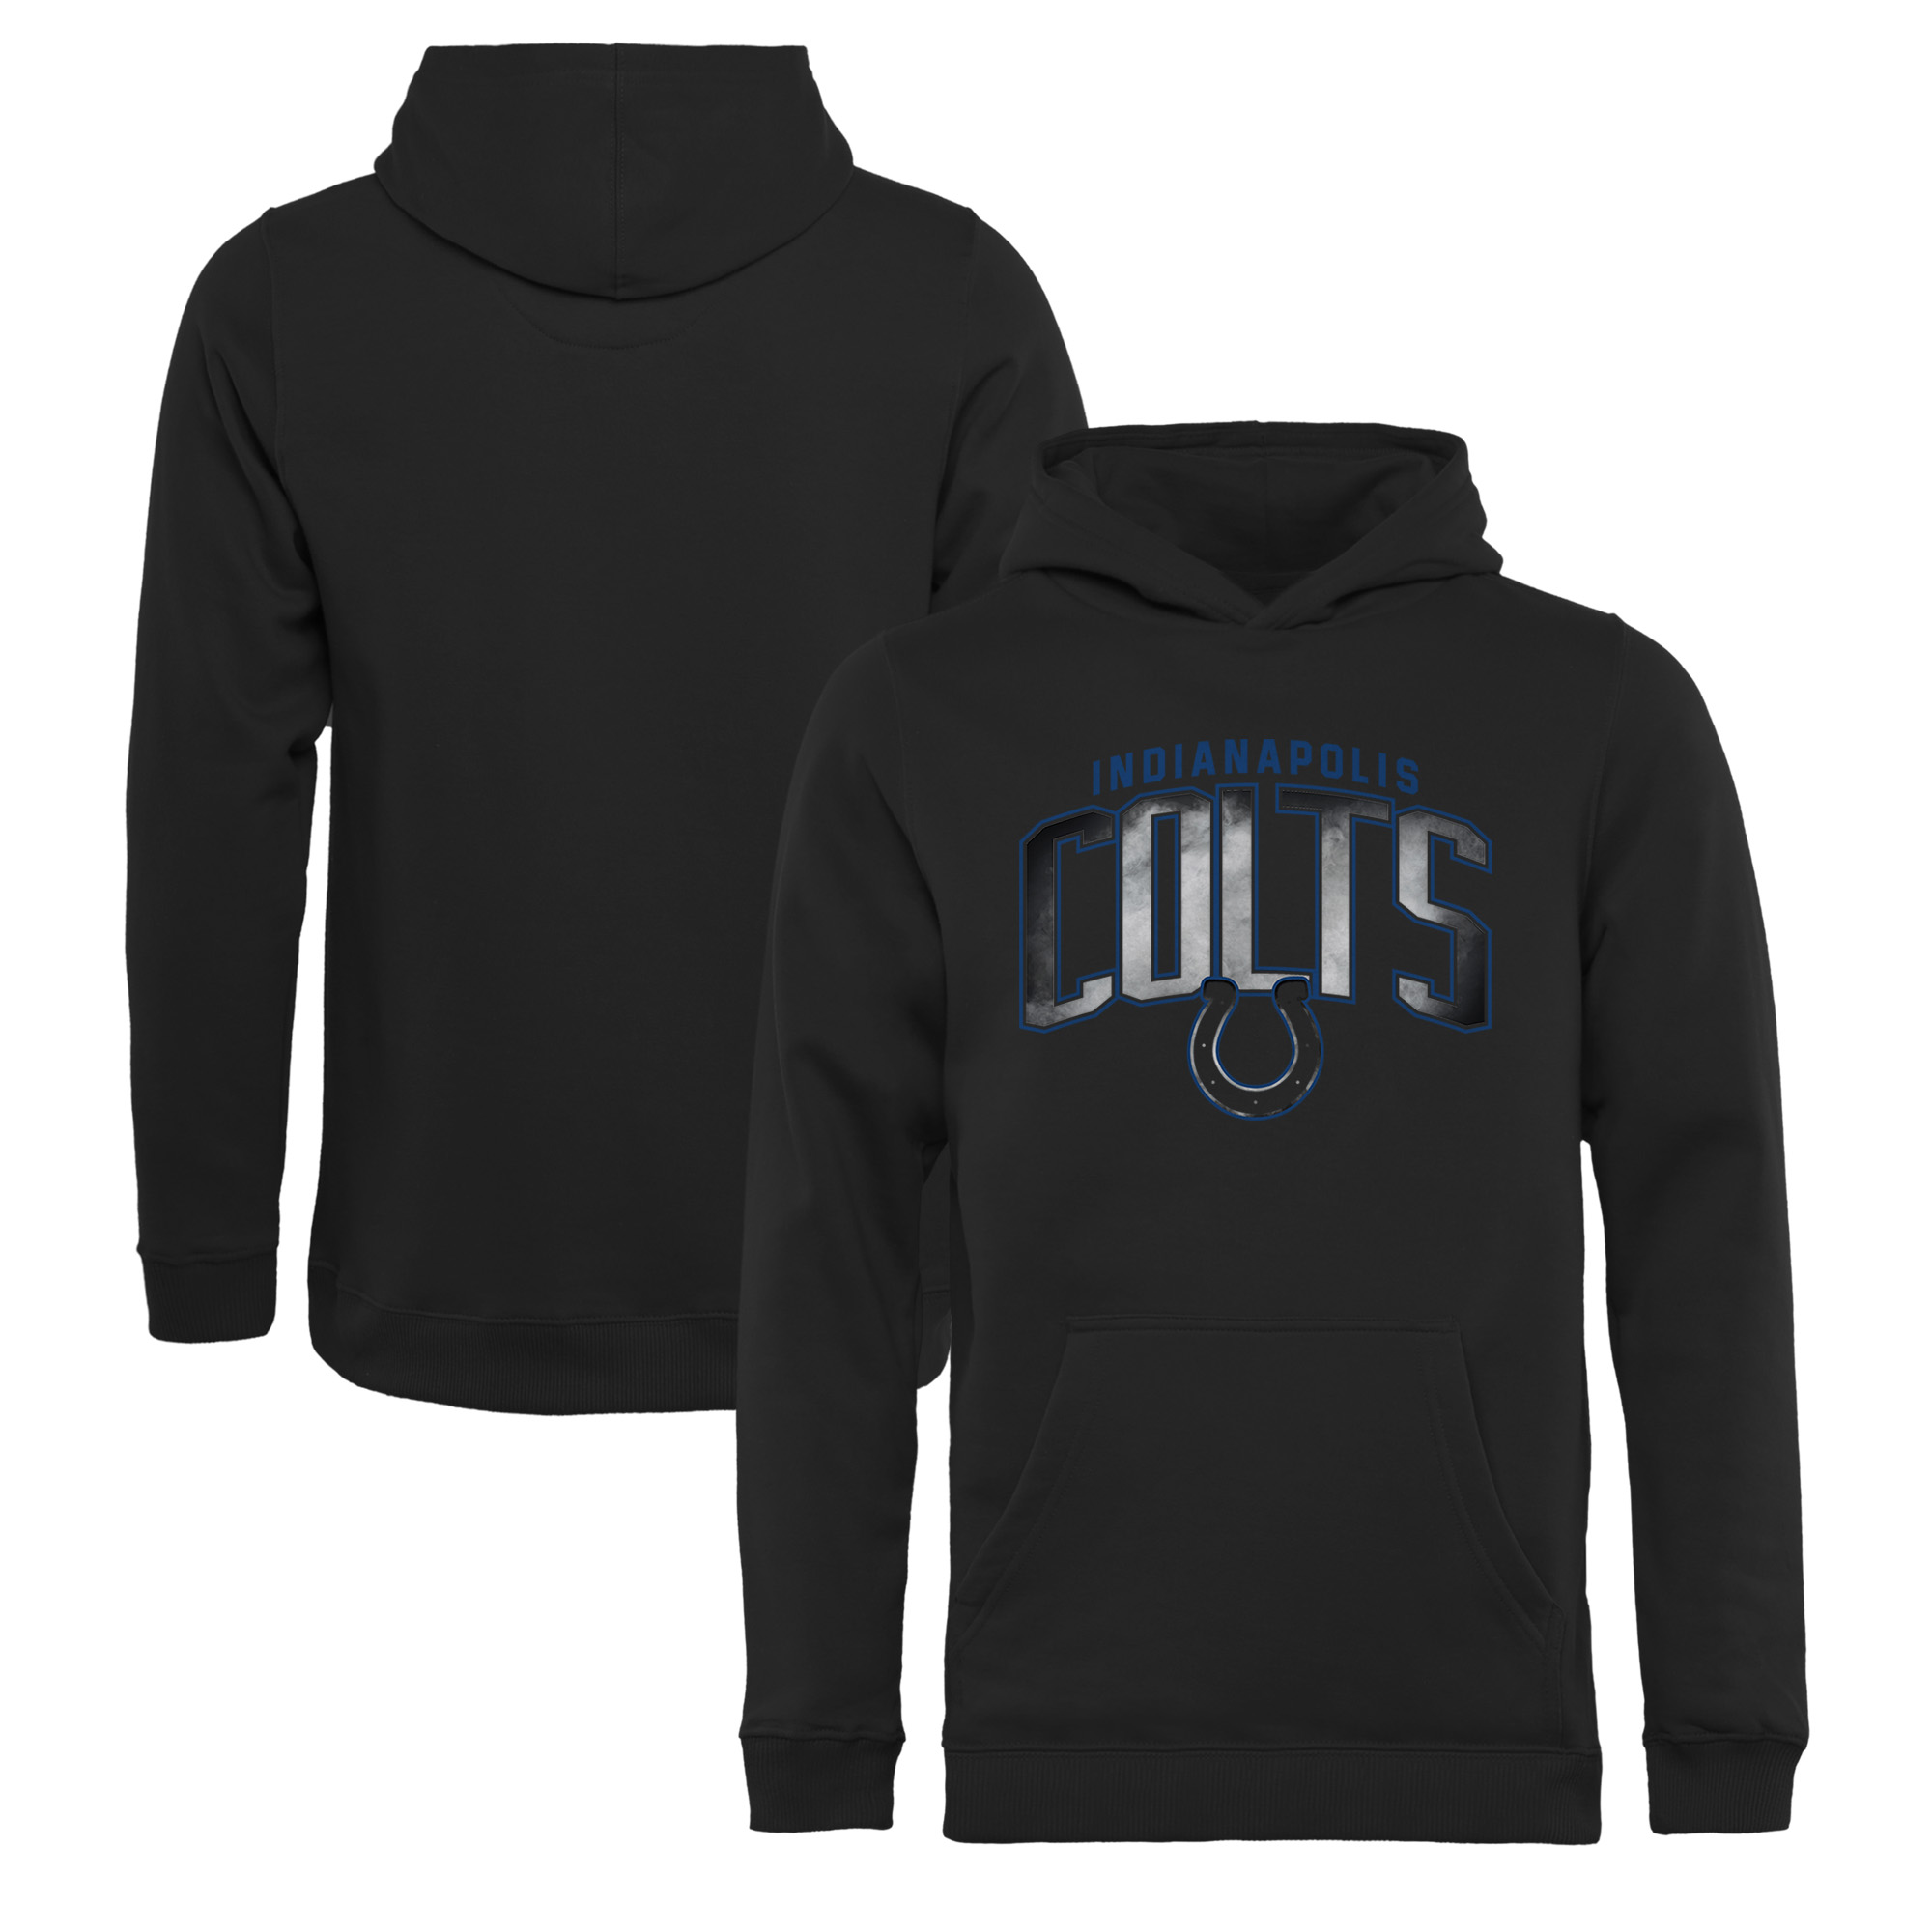 Indianapolis Colts NFL Pro Line by Fanatics Branded Youth Arch Smoke Pullover Hoodie - Black